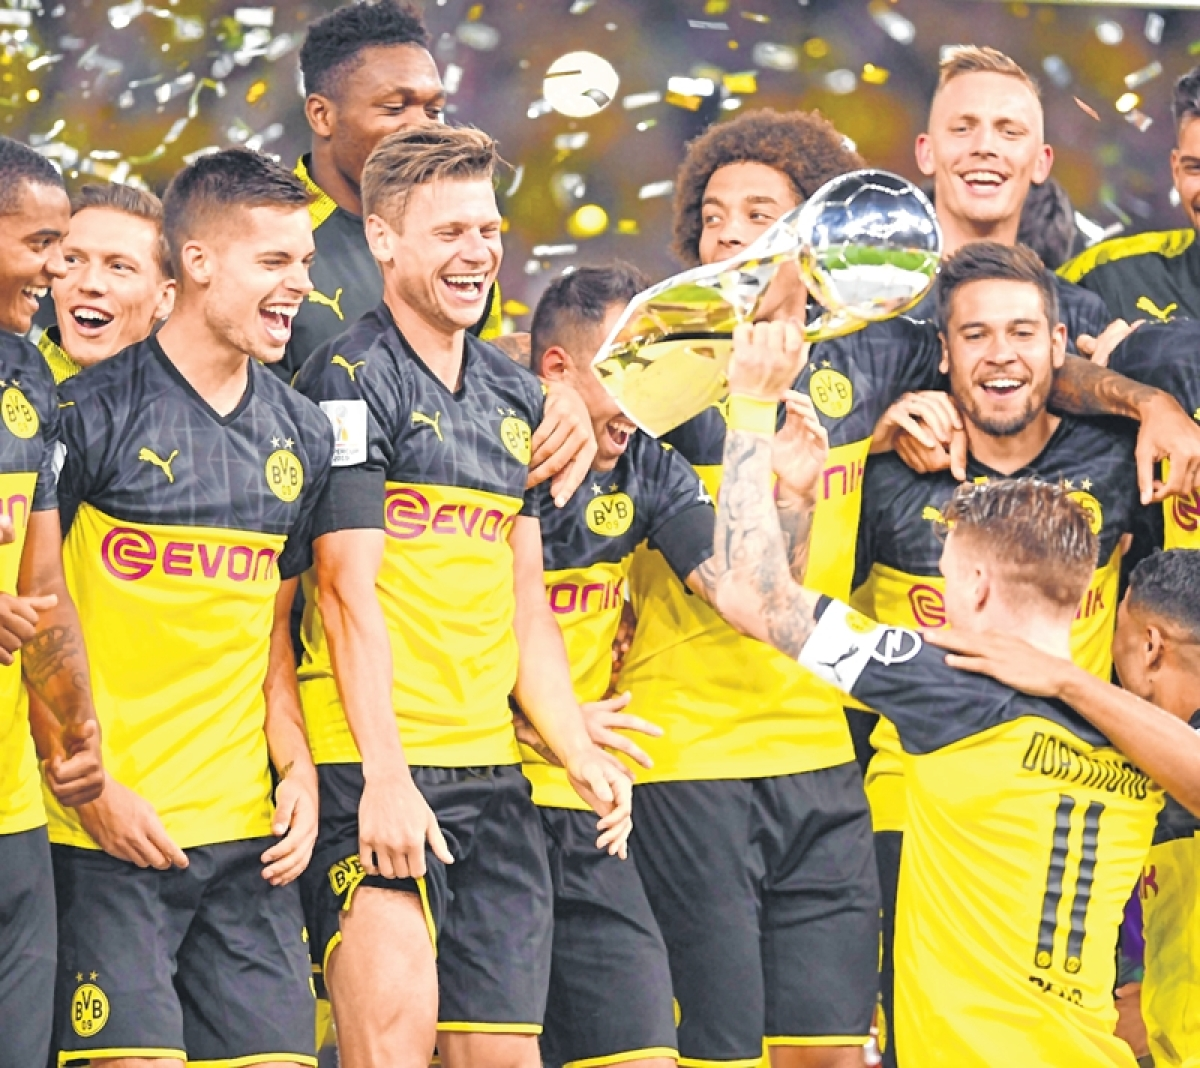 Super Borussia Dortmund win Supercup